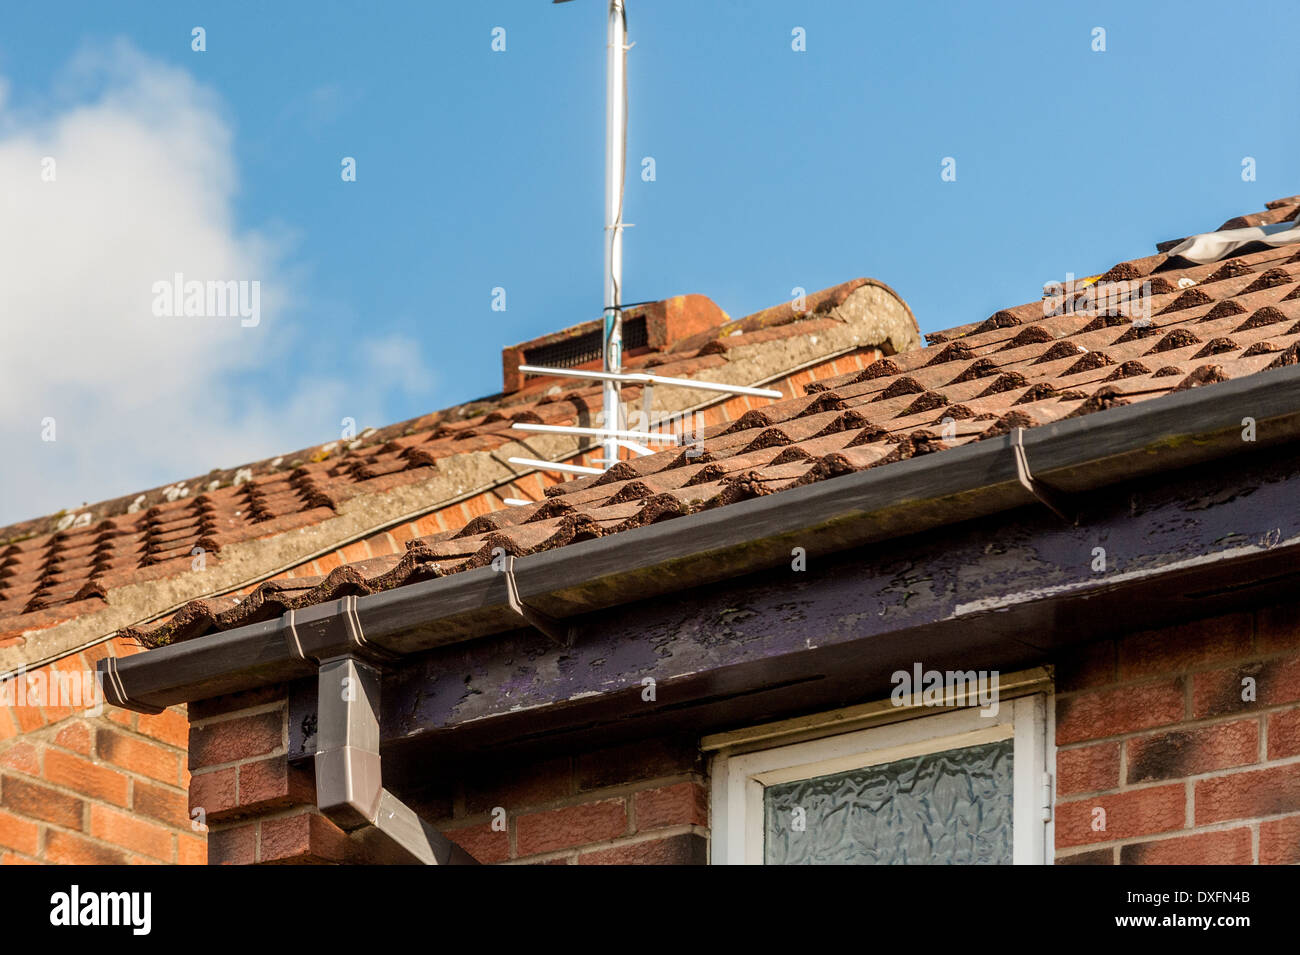 How to paint fascia boards - Standard Domestic Tiled Roof On House With Guttering And Fascia Board In Need Of Painting